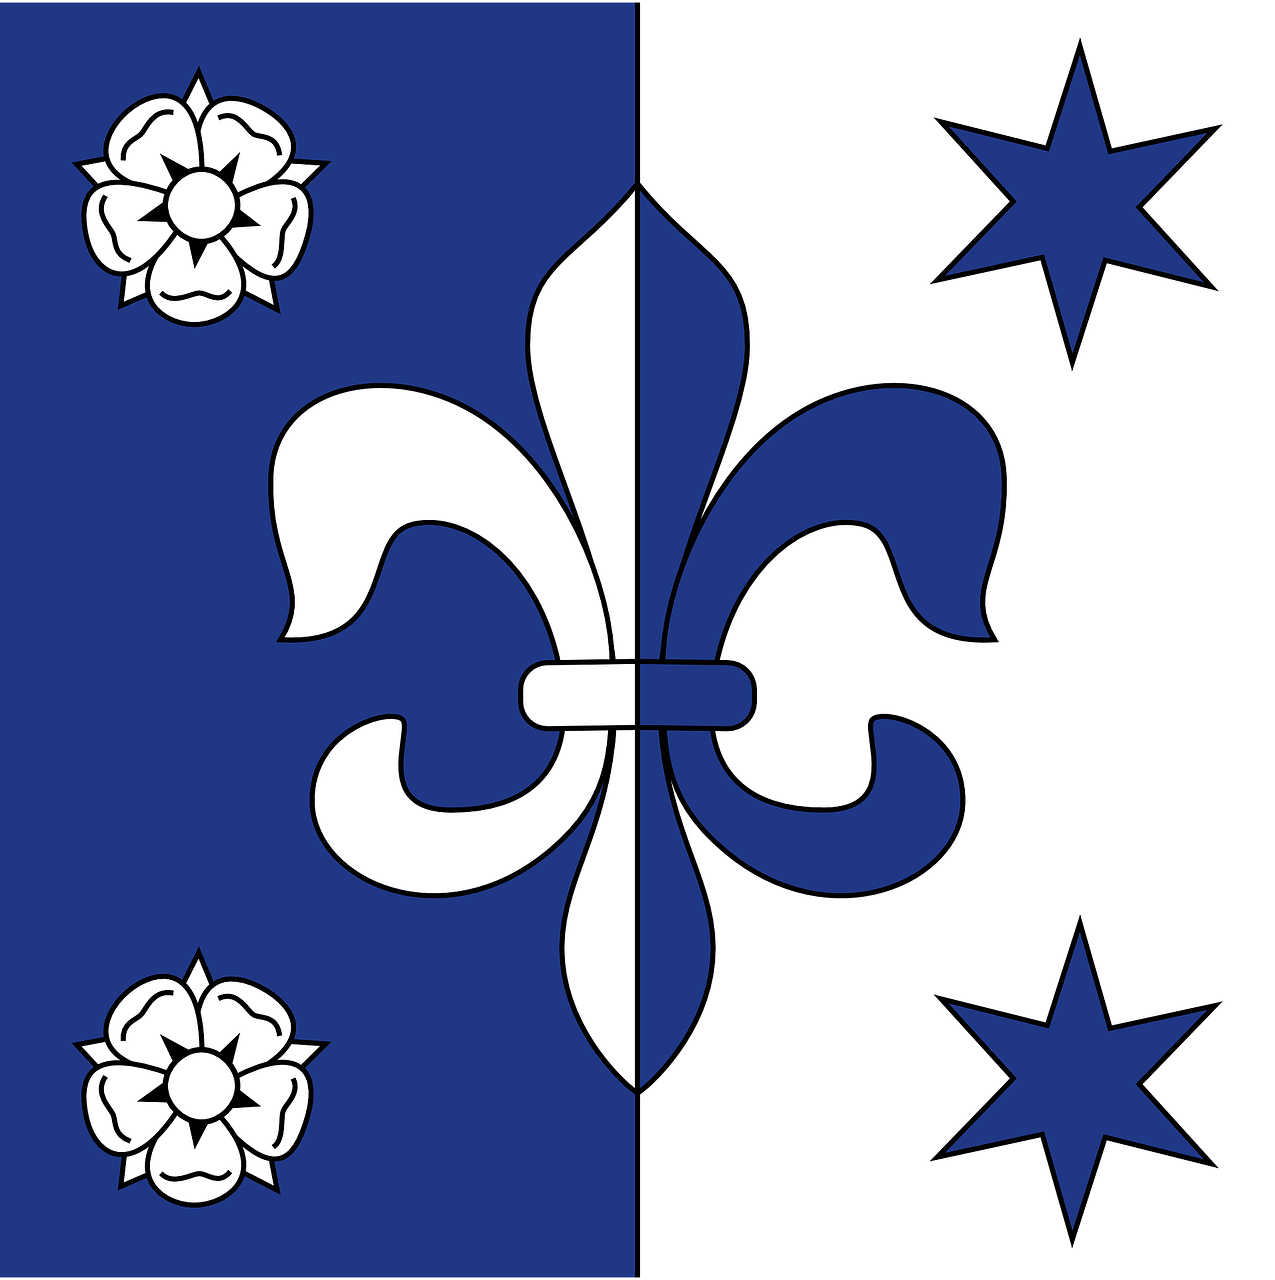 fleur de lis coat or arms heraldry free photo